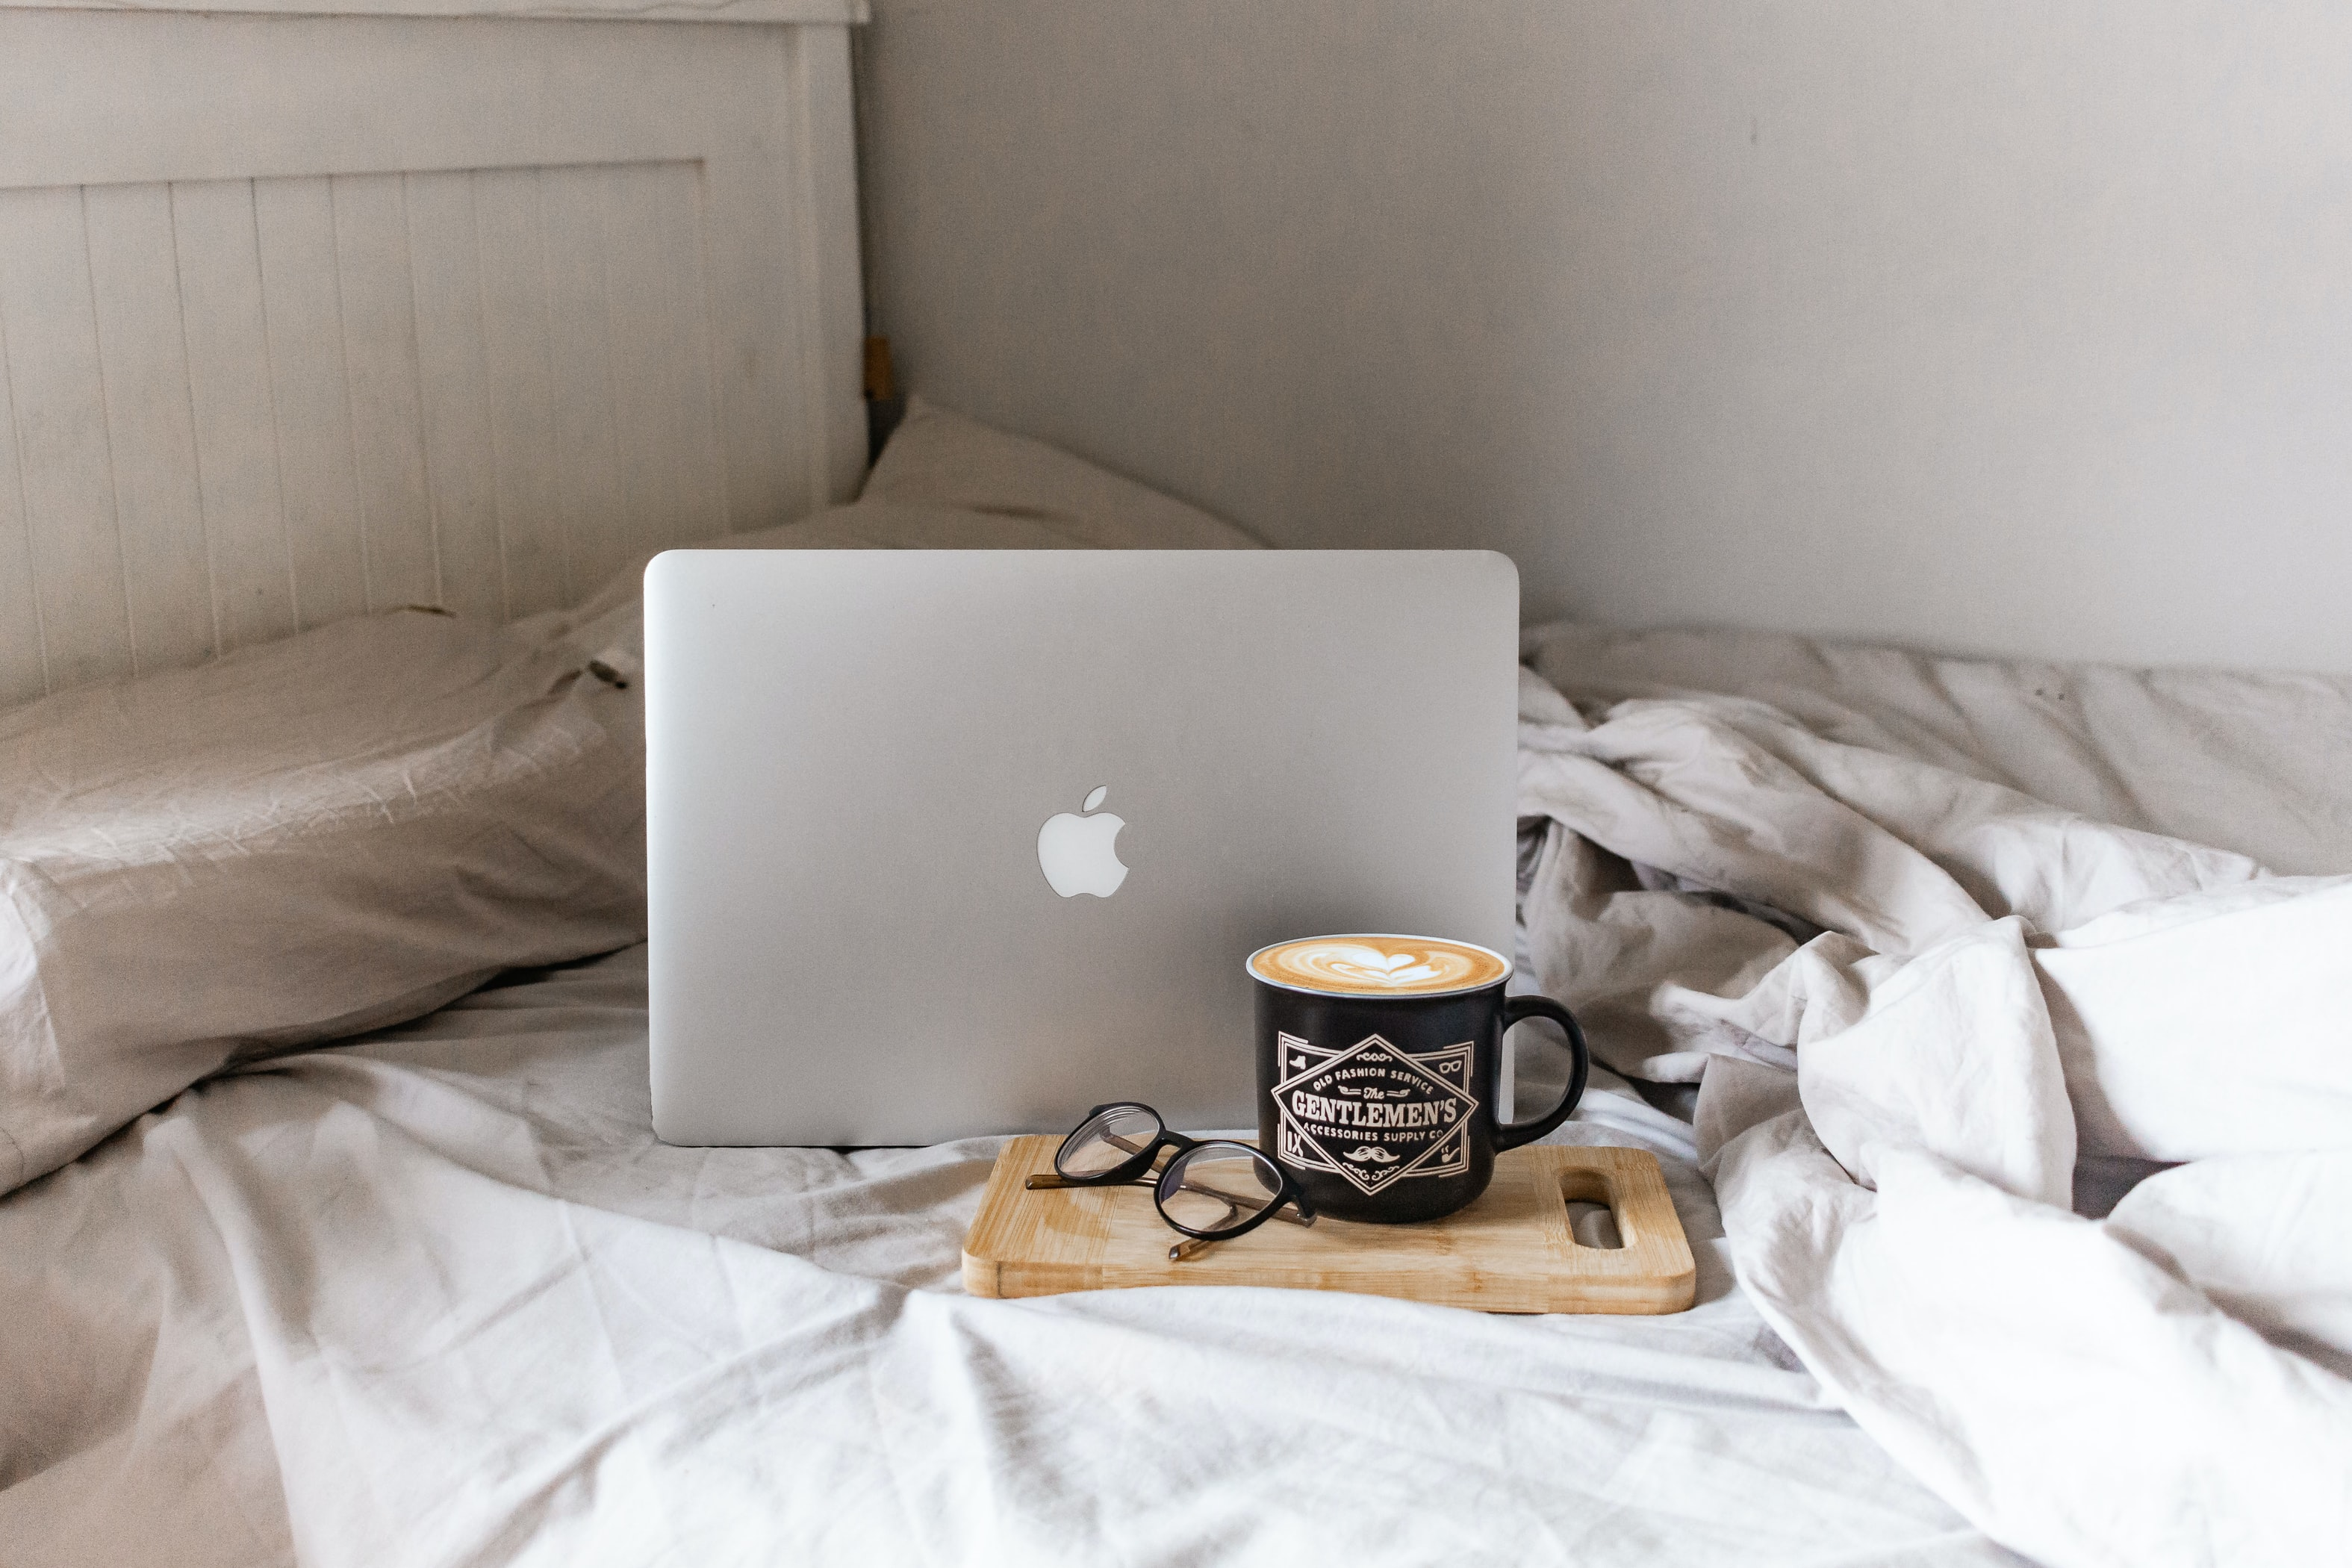 Laptop on a bed next to a coffee.